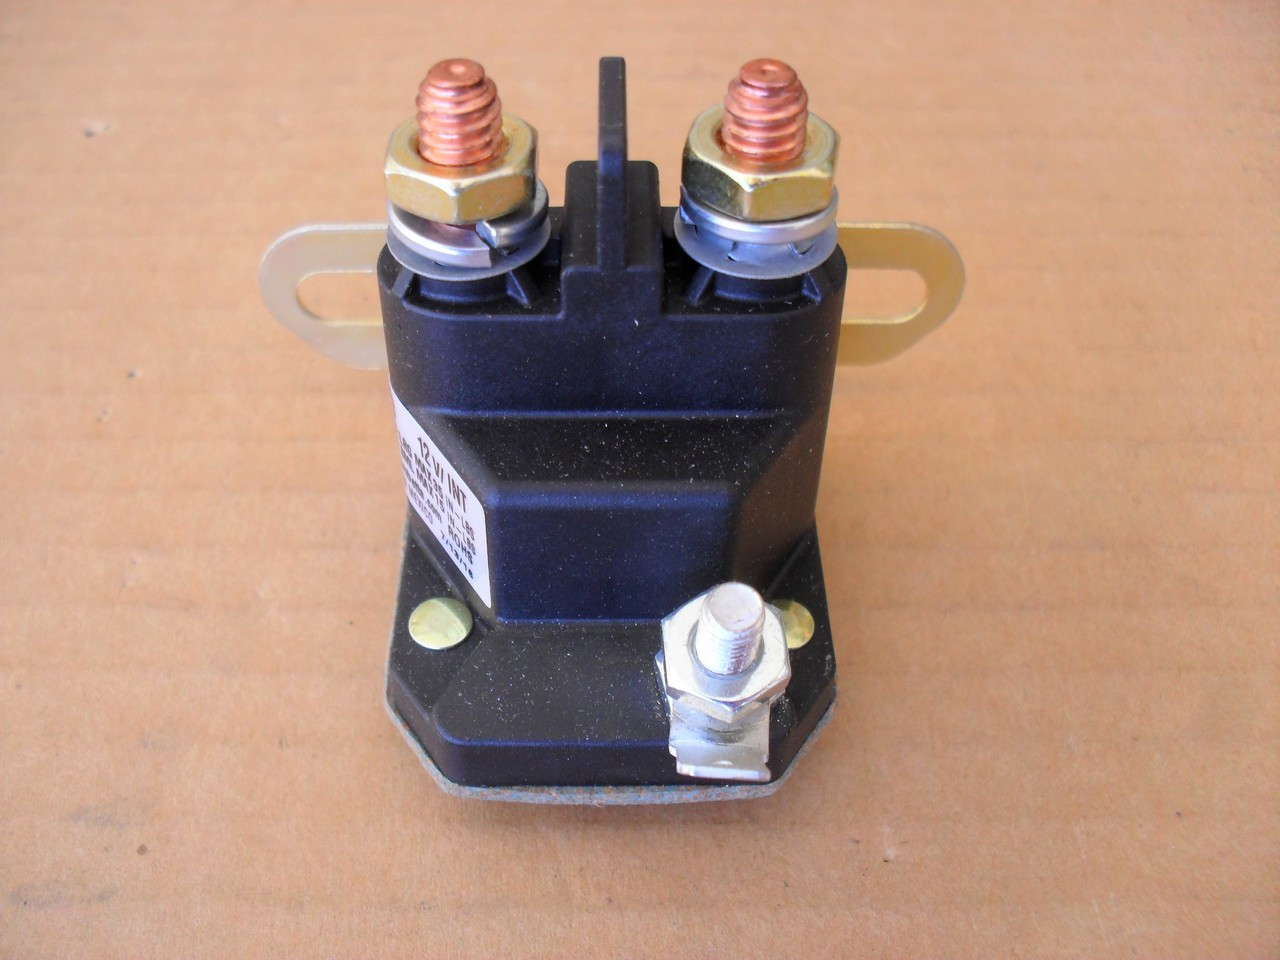 Starter Solenoid for MTD 725-1426, 925-1426, 925-1426A Lawn Mower